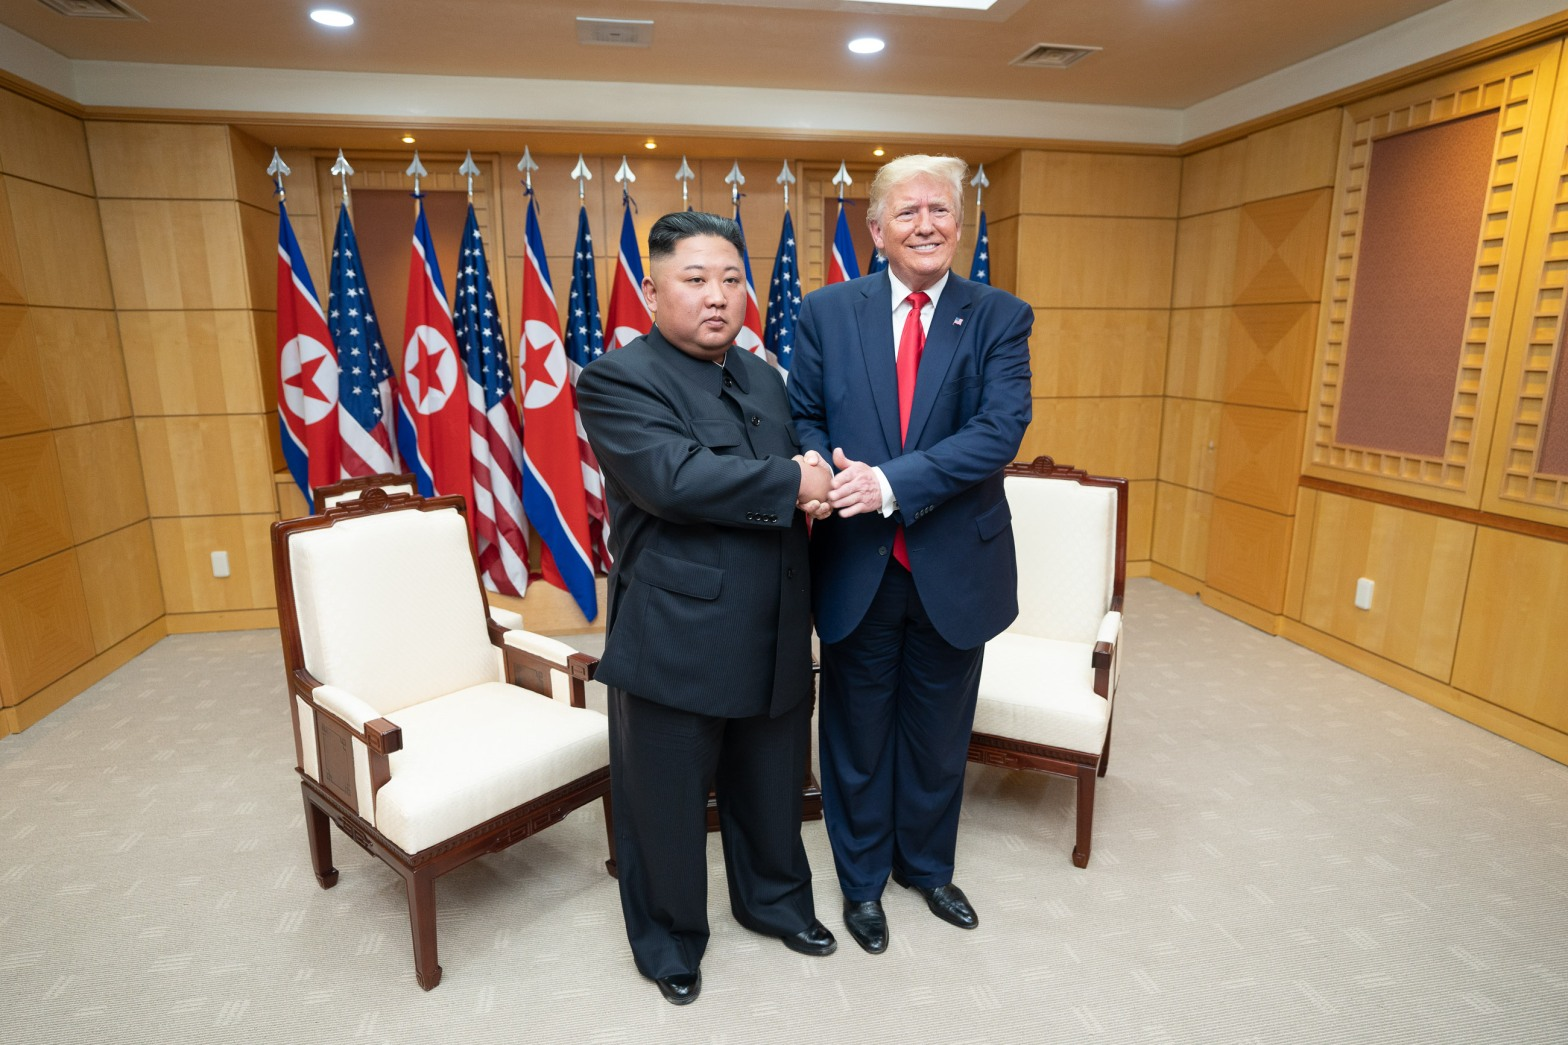 Donald Trump, President of the Unted States, standing with North Korean Leader, Kim Jung-un, shaking hands